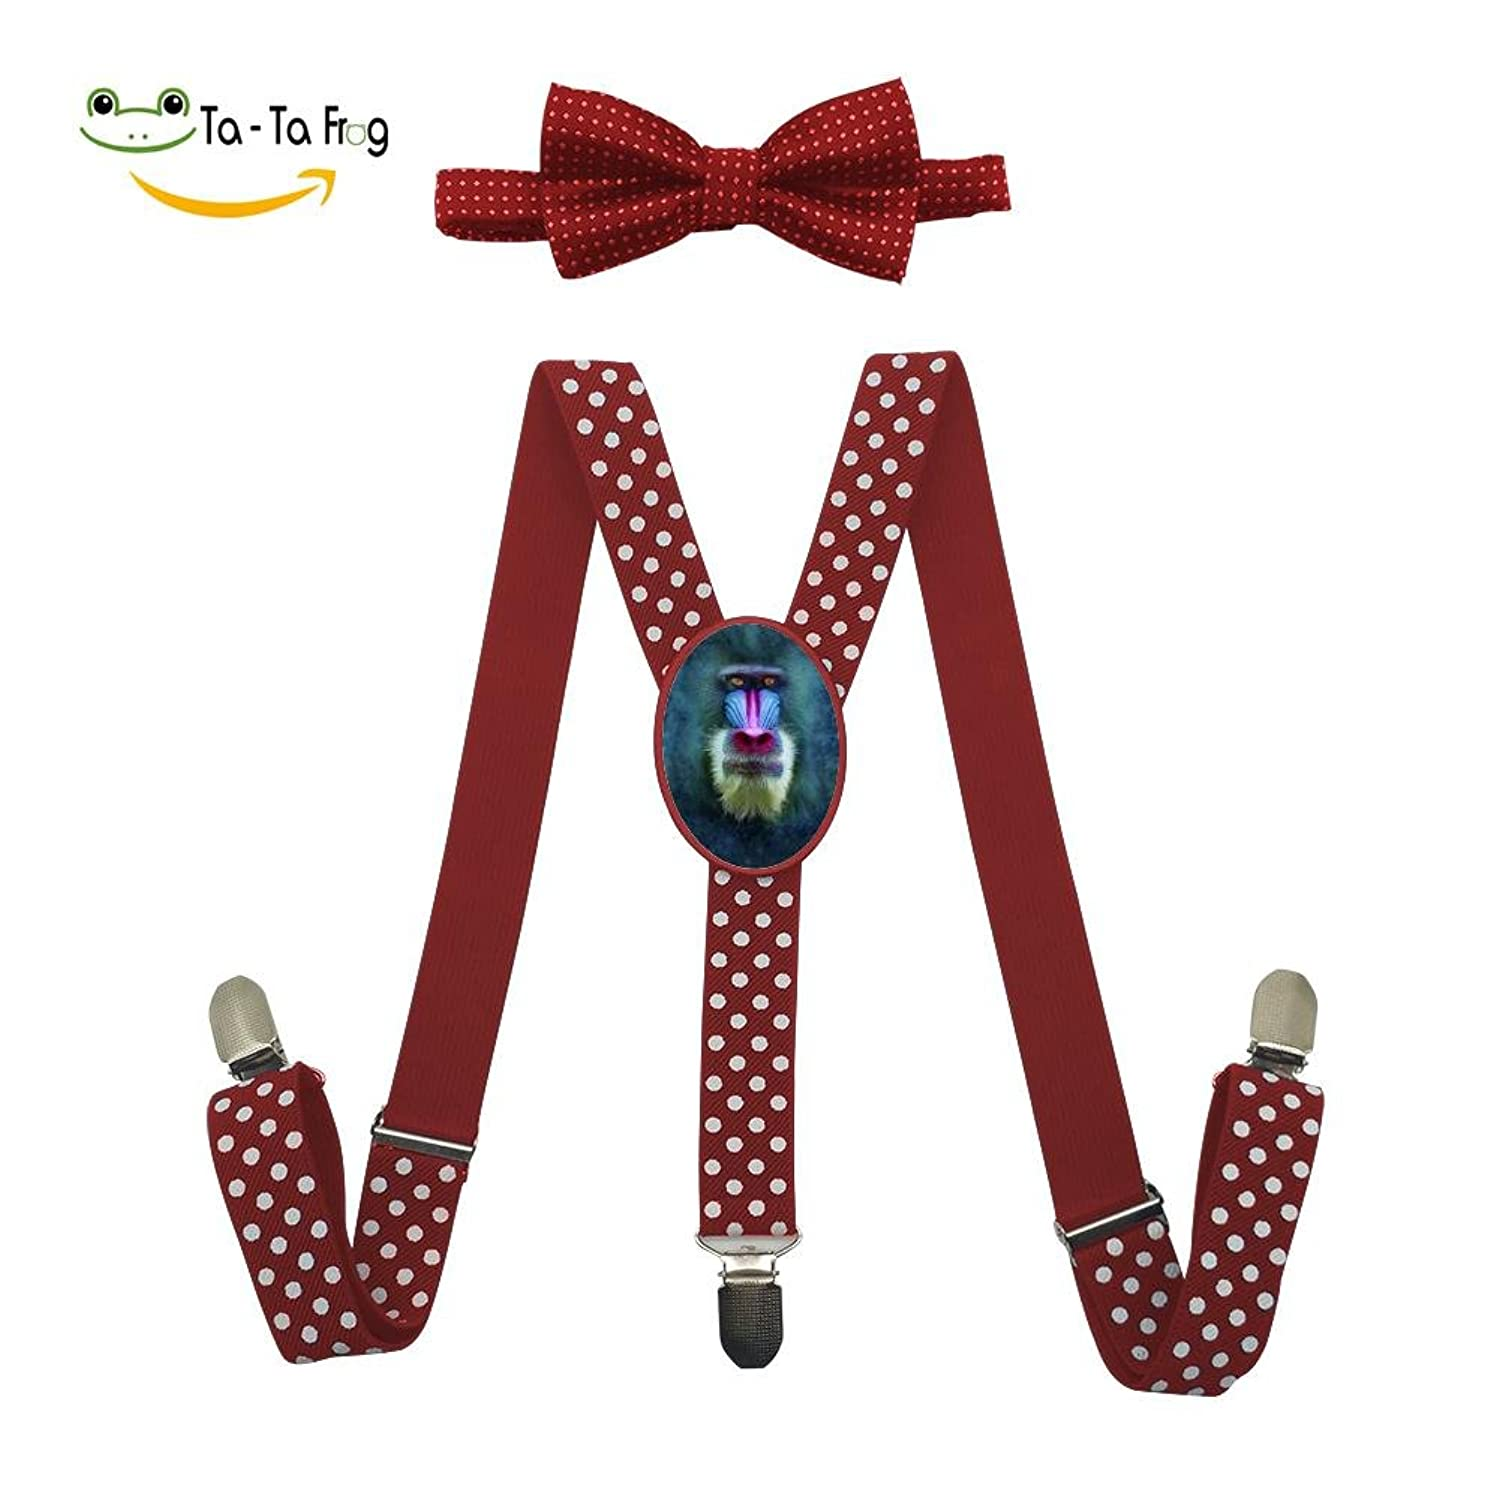 top big-face-mandrill-baboon Y-Back Suspenders And Pre-Tied Bowtie Set For Boys And Girls Casual And Formal